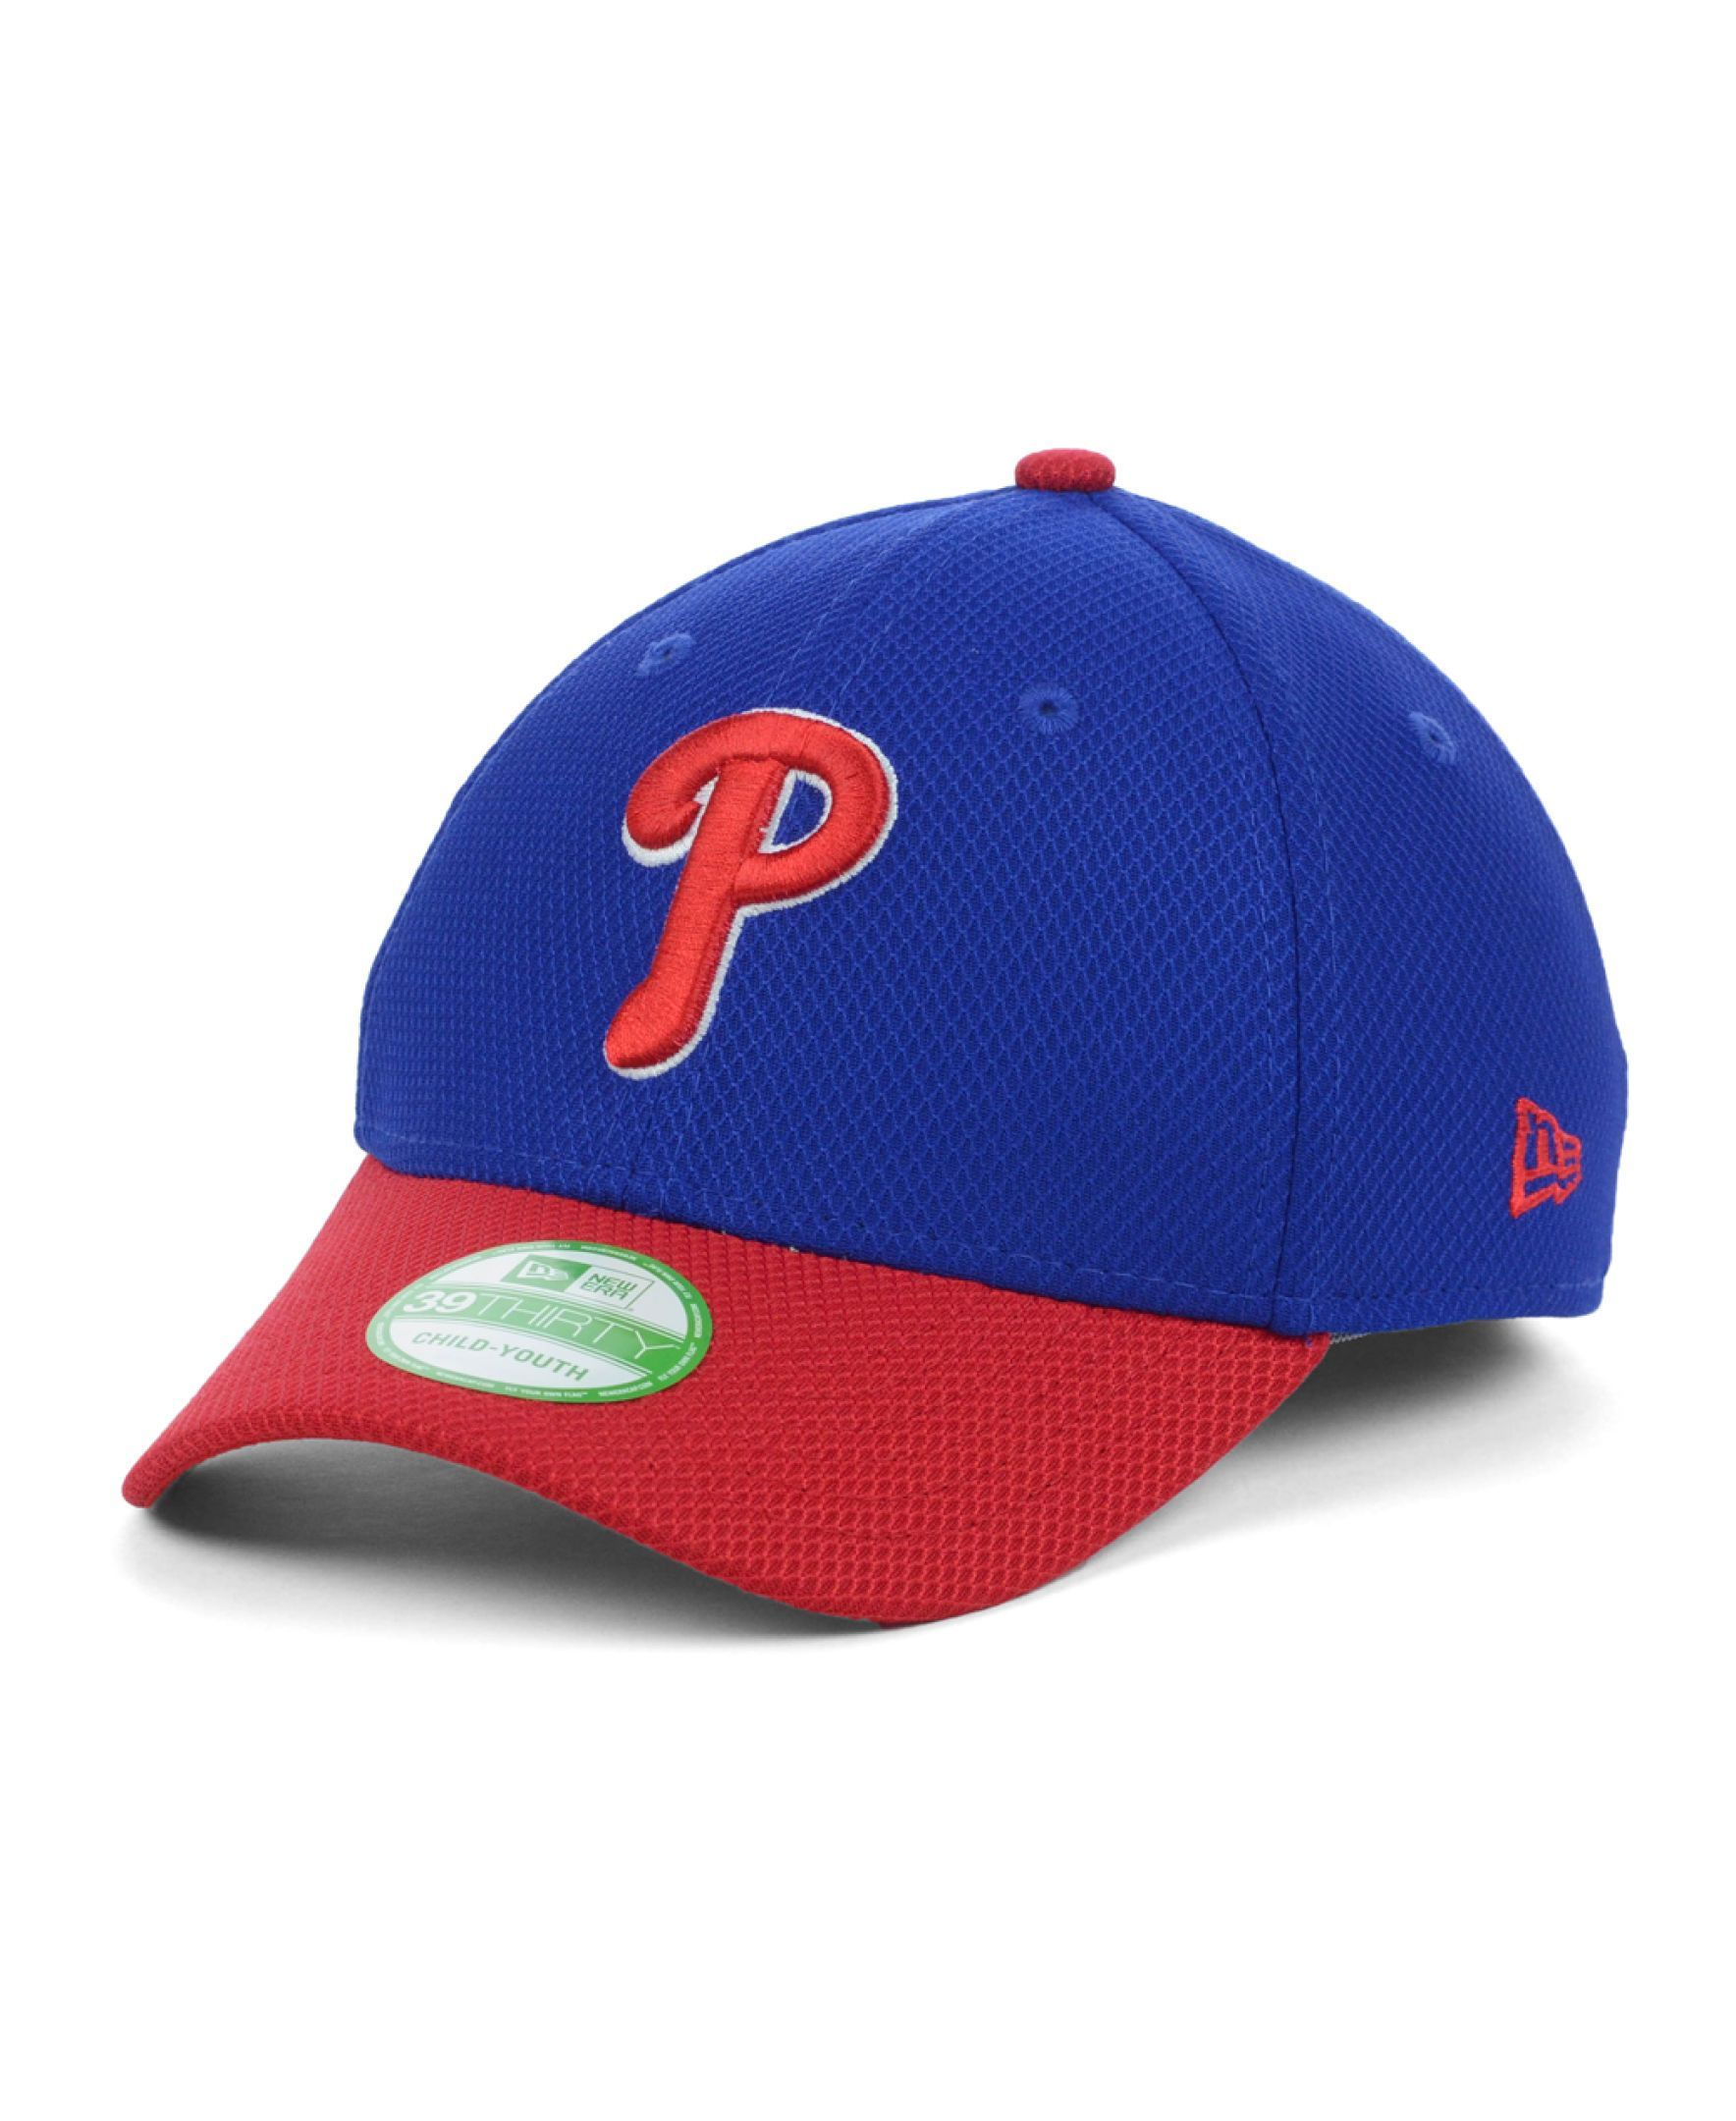 super popular 8cad2 13bef New Era Kids  Philadelphia Phillies Diamond Era 2 Tone 39THIRTY Cap